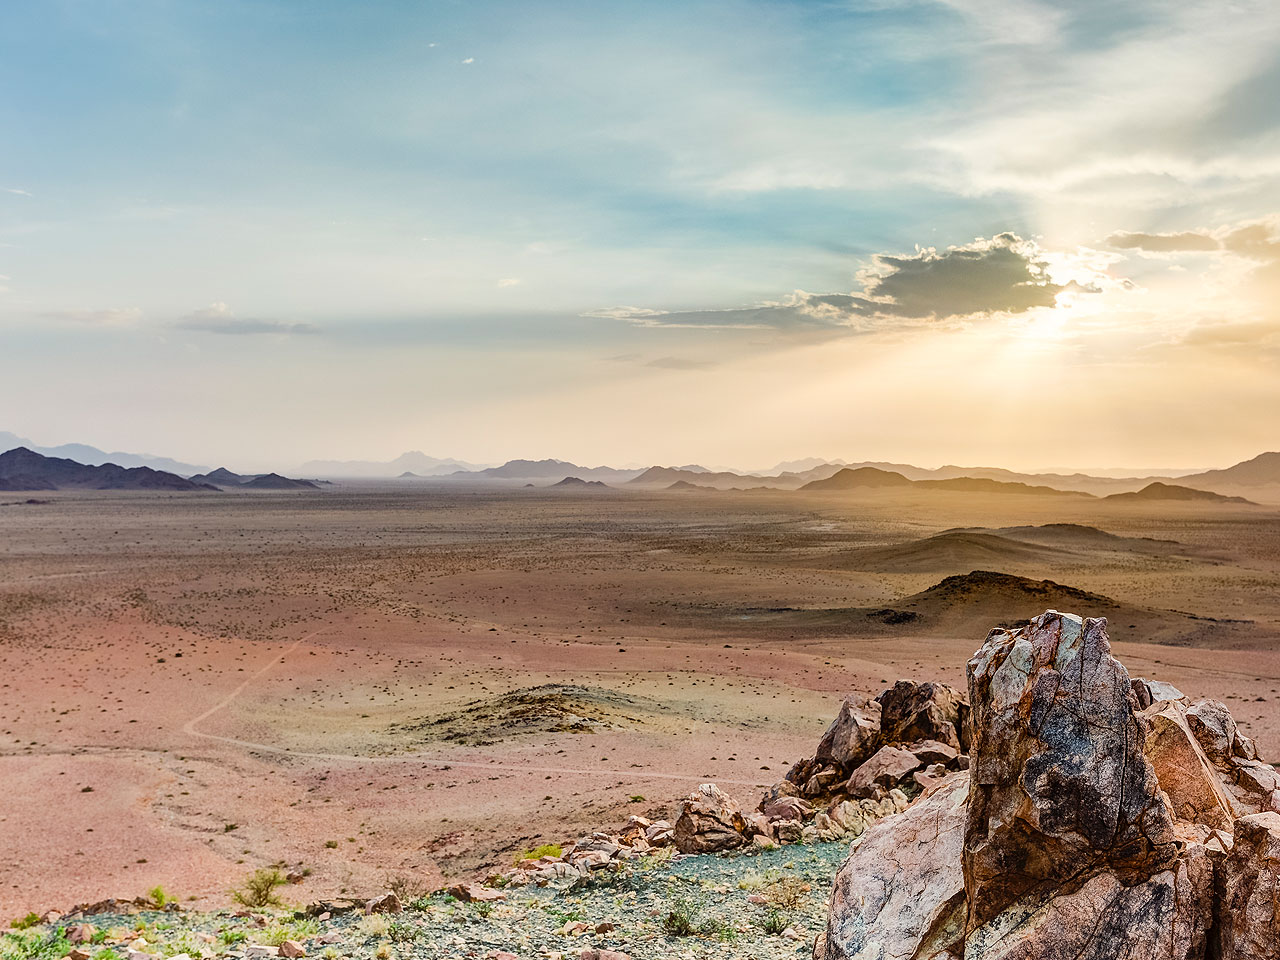 A view out over the endless plains and mountain landscape of the NamibRand Reserve at sunrise.